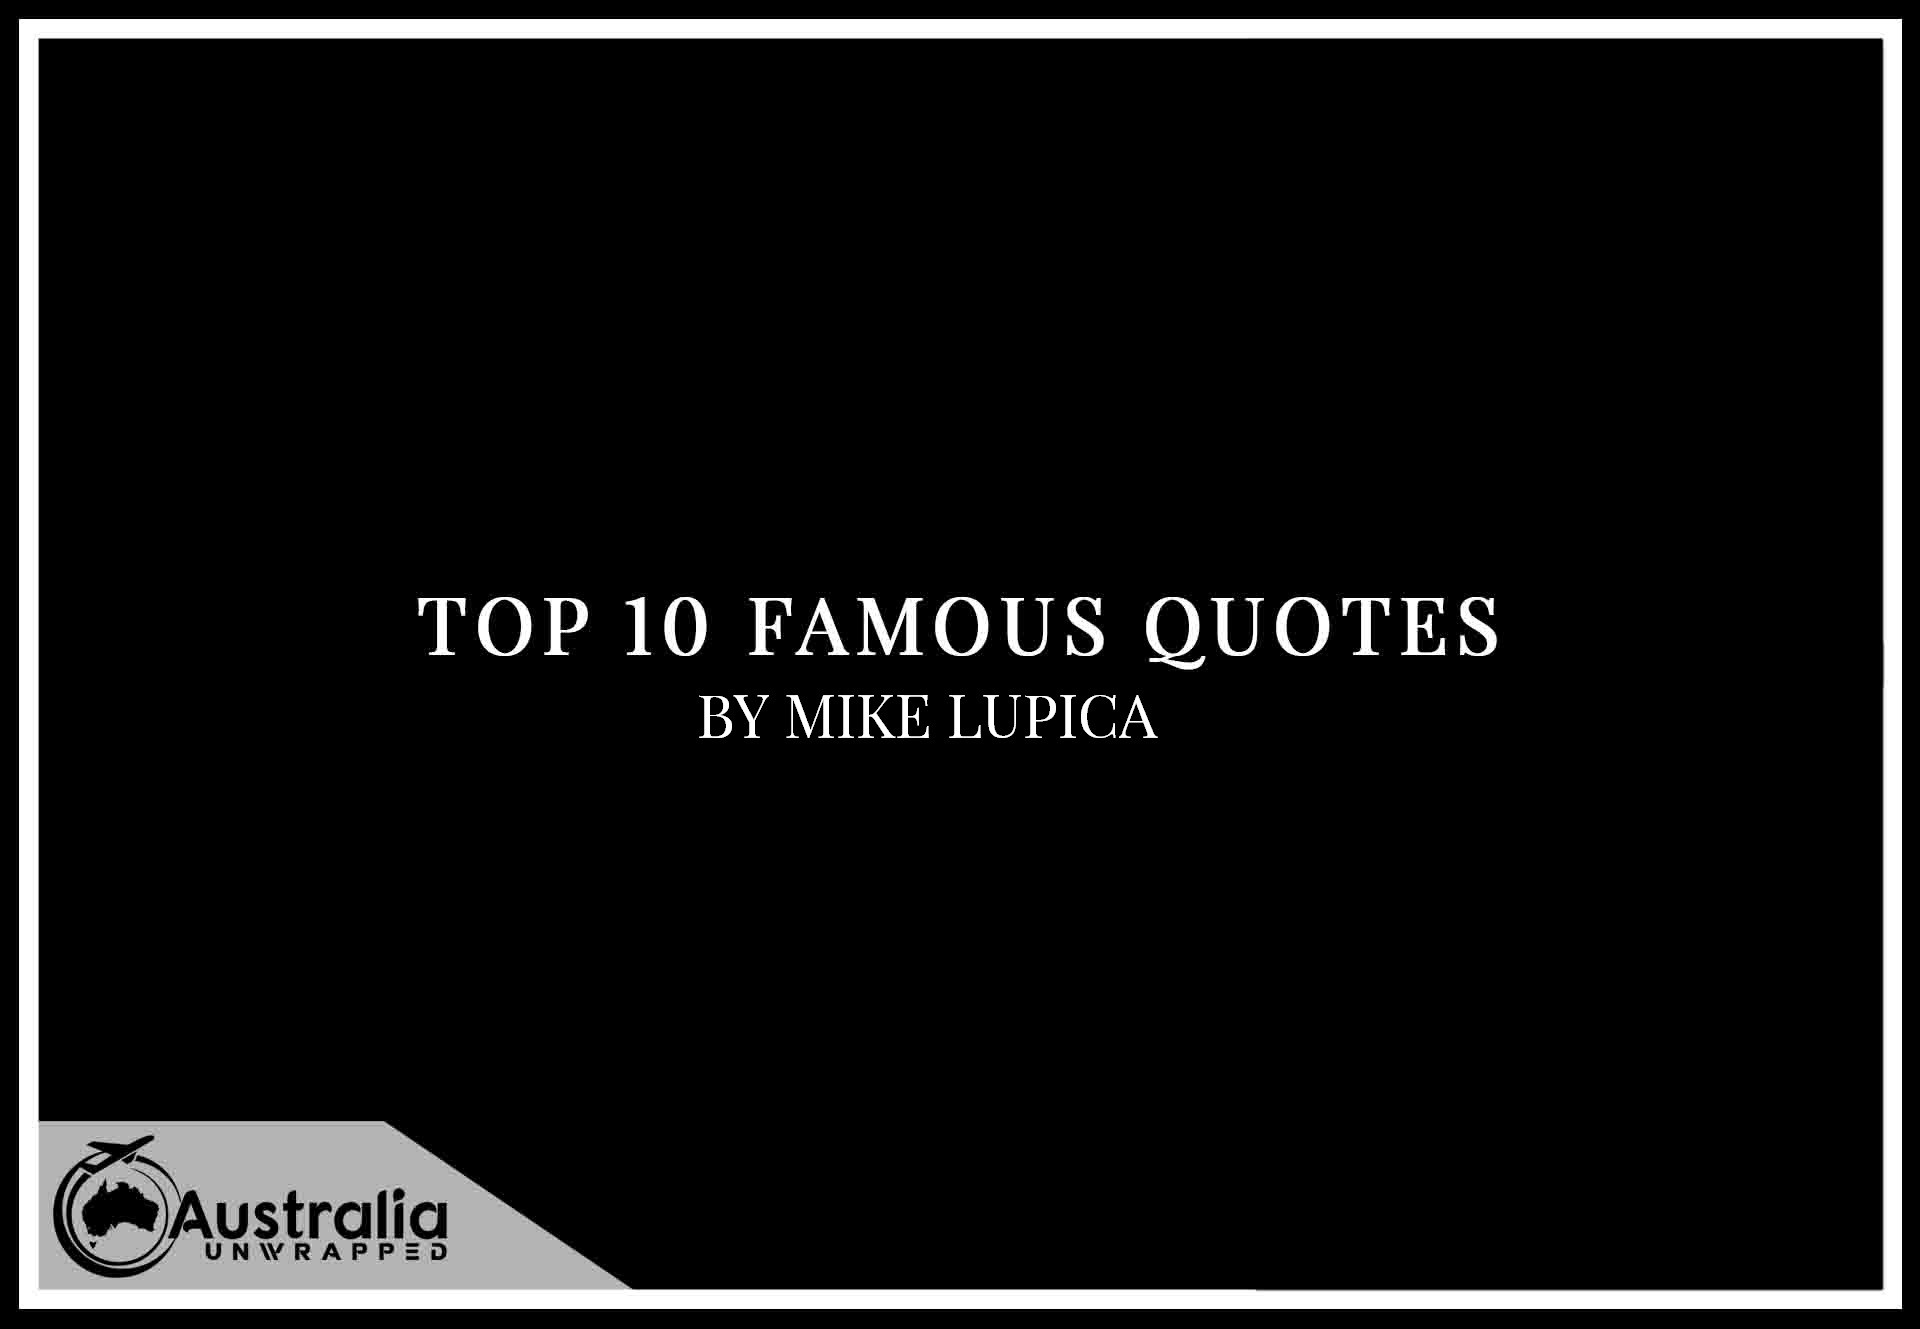 Top 10 Famous Quotes by Author Mike Lupica